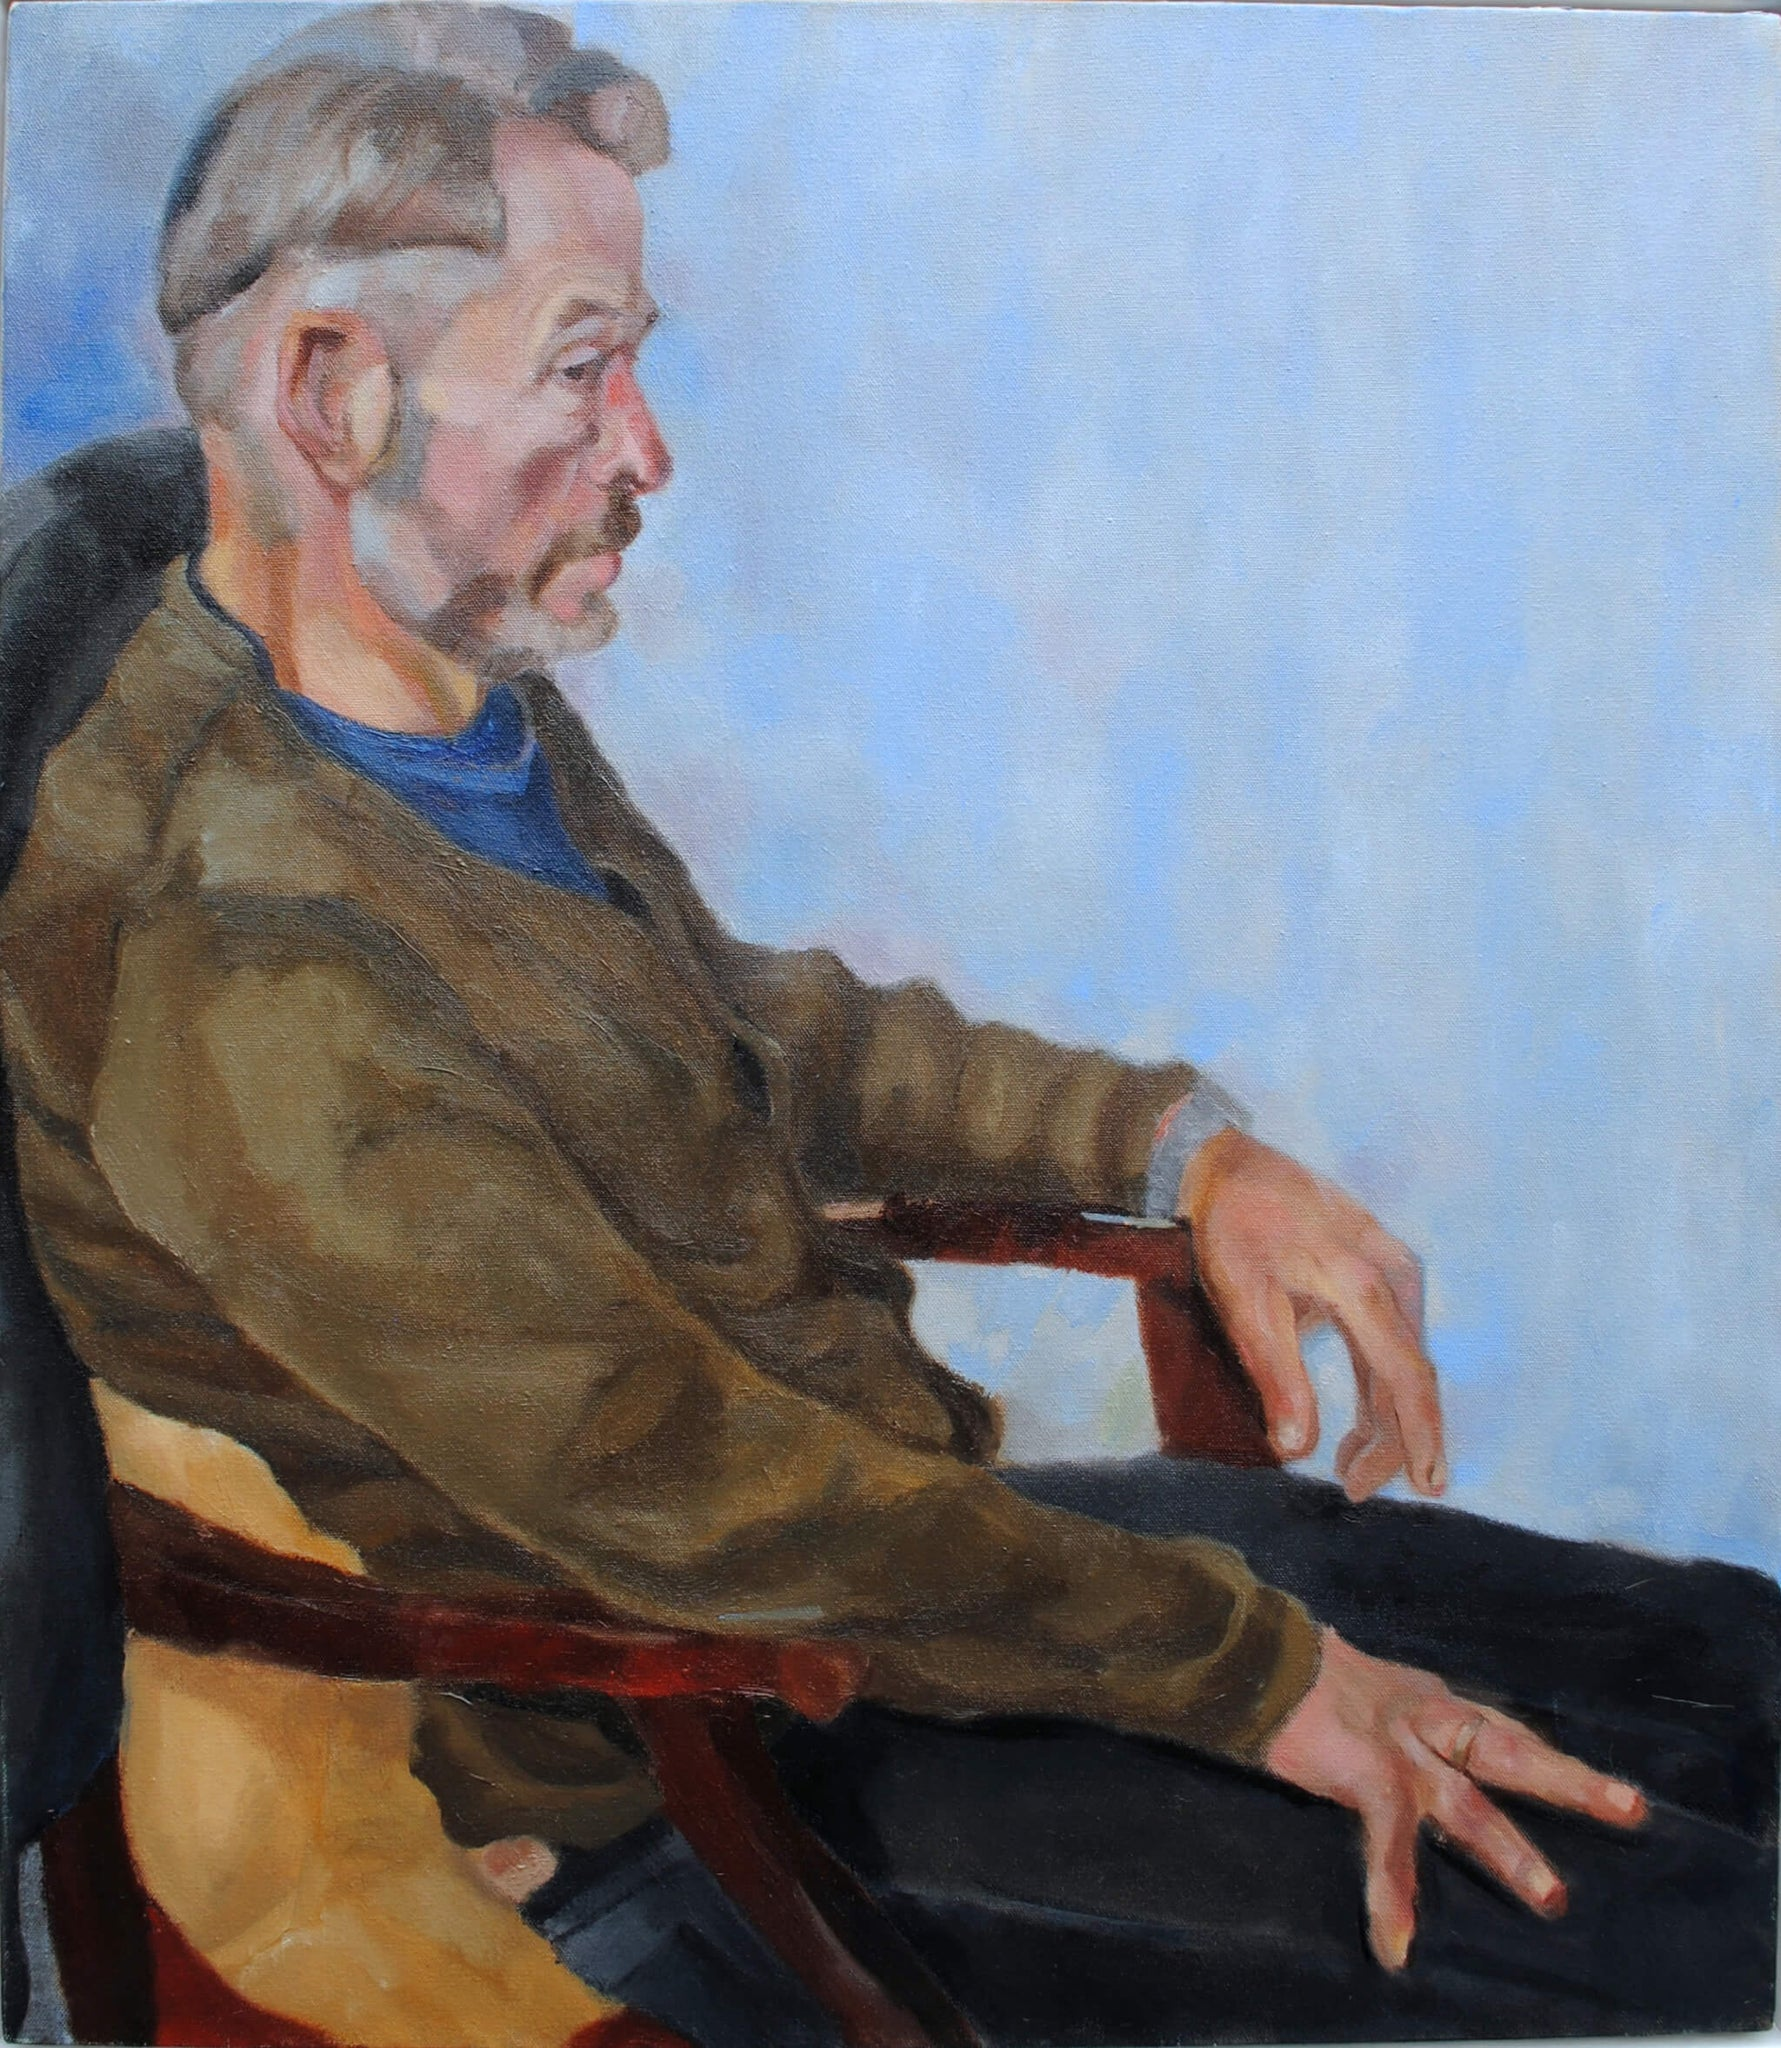 Heatherleys model David portrait in oils on canvas artwork by Stella Tooth.